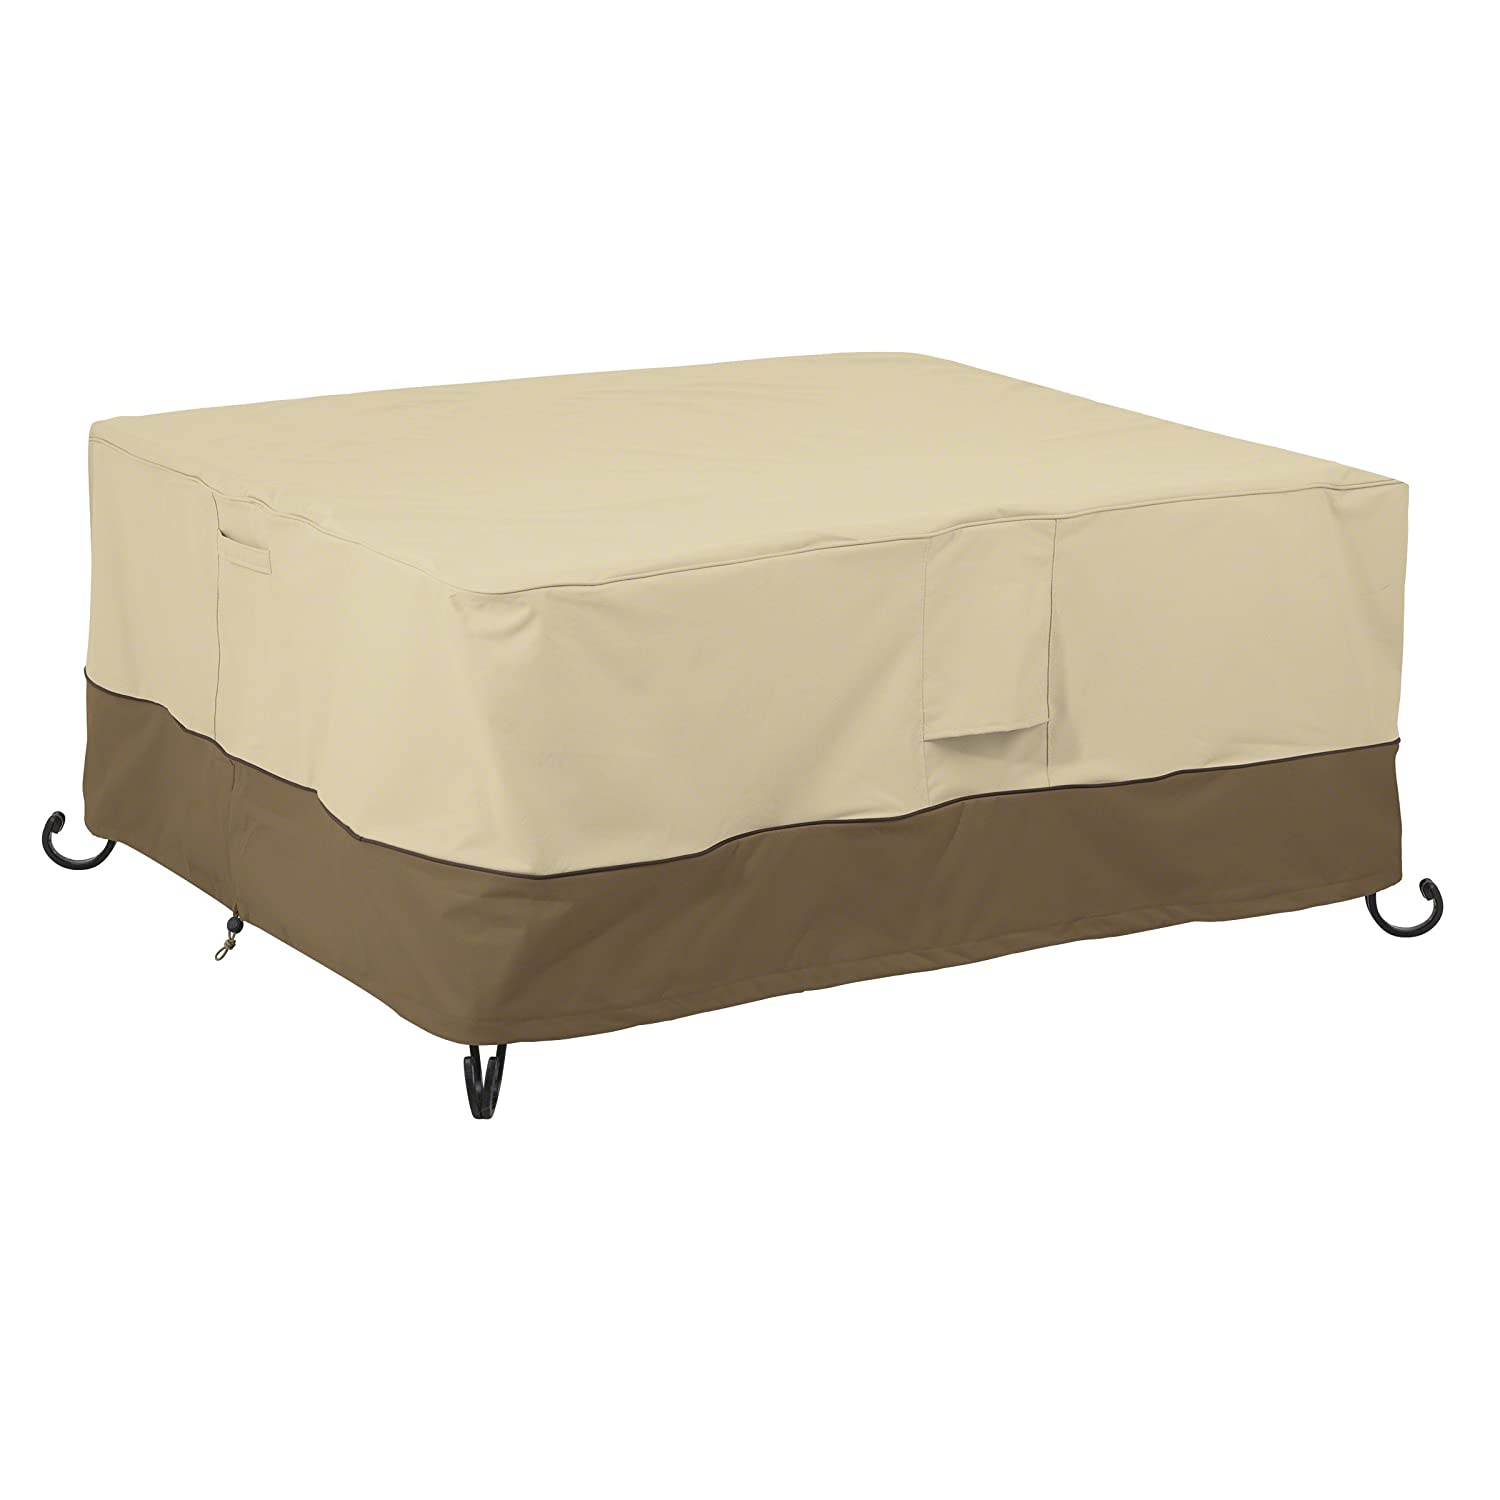 Classic Accessories 55-619-011501-00 Veranda Rectangular Fire Pit/Table Cover, 40-Inch